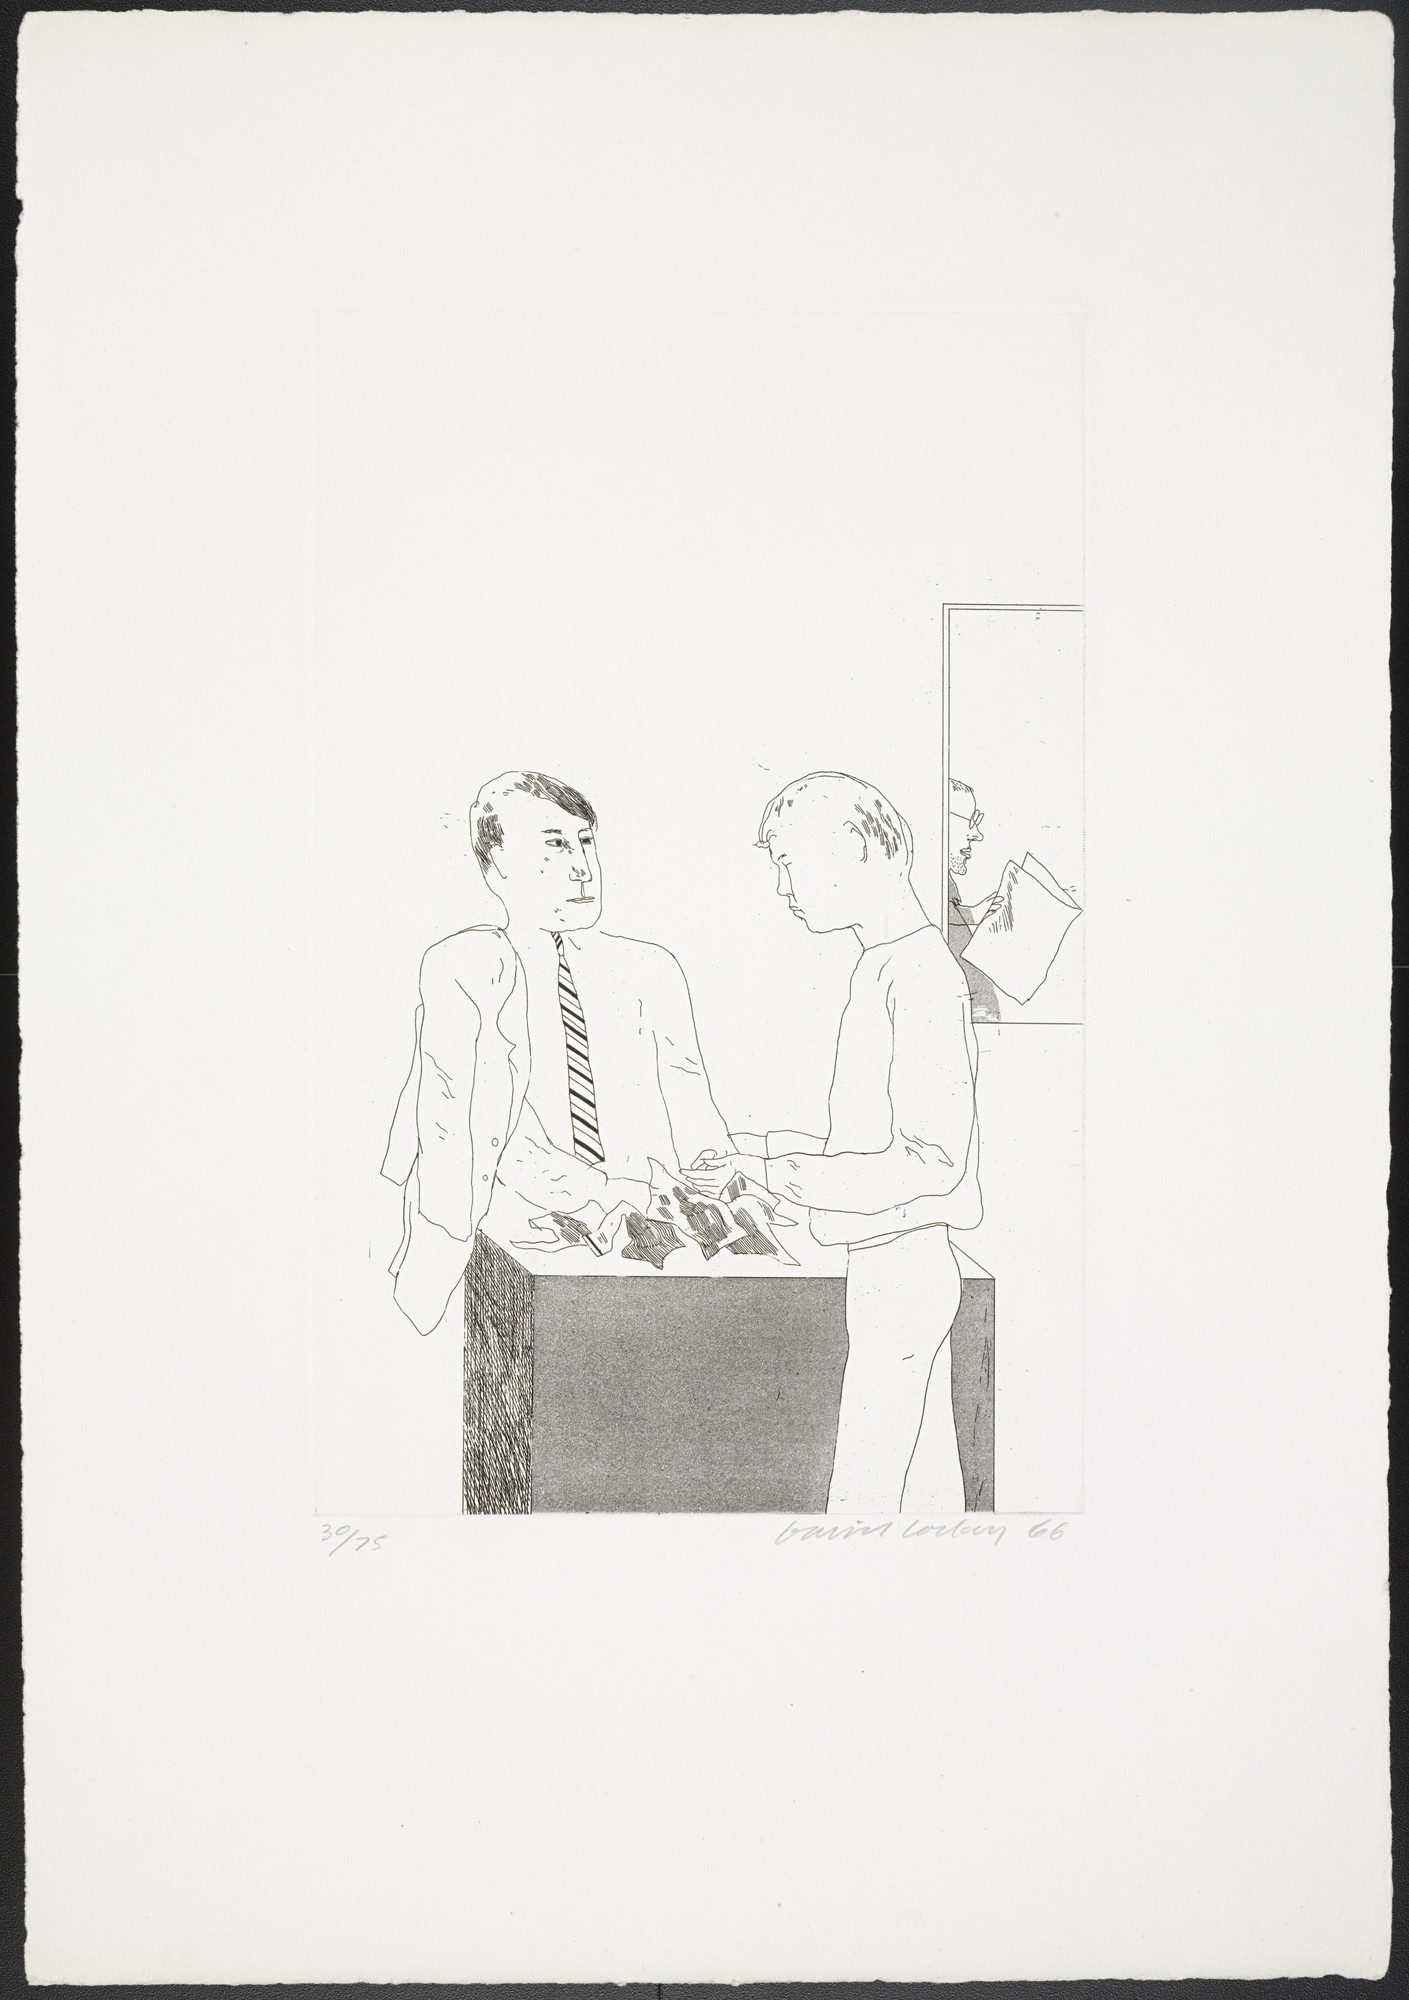 David Hockney. He Enquired After the Quality from Fourteen Poems. 1966, published 1967